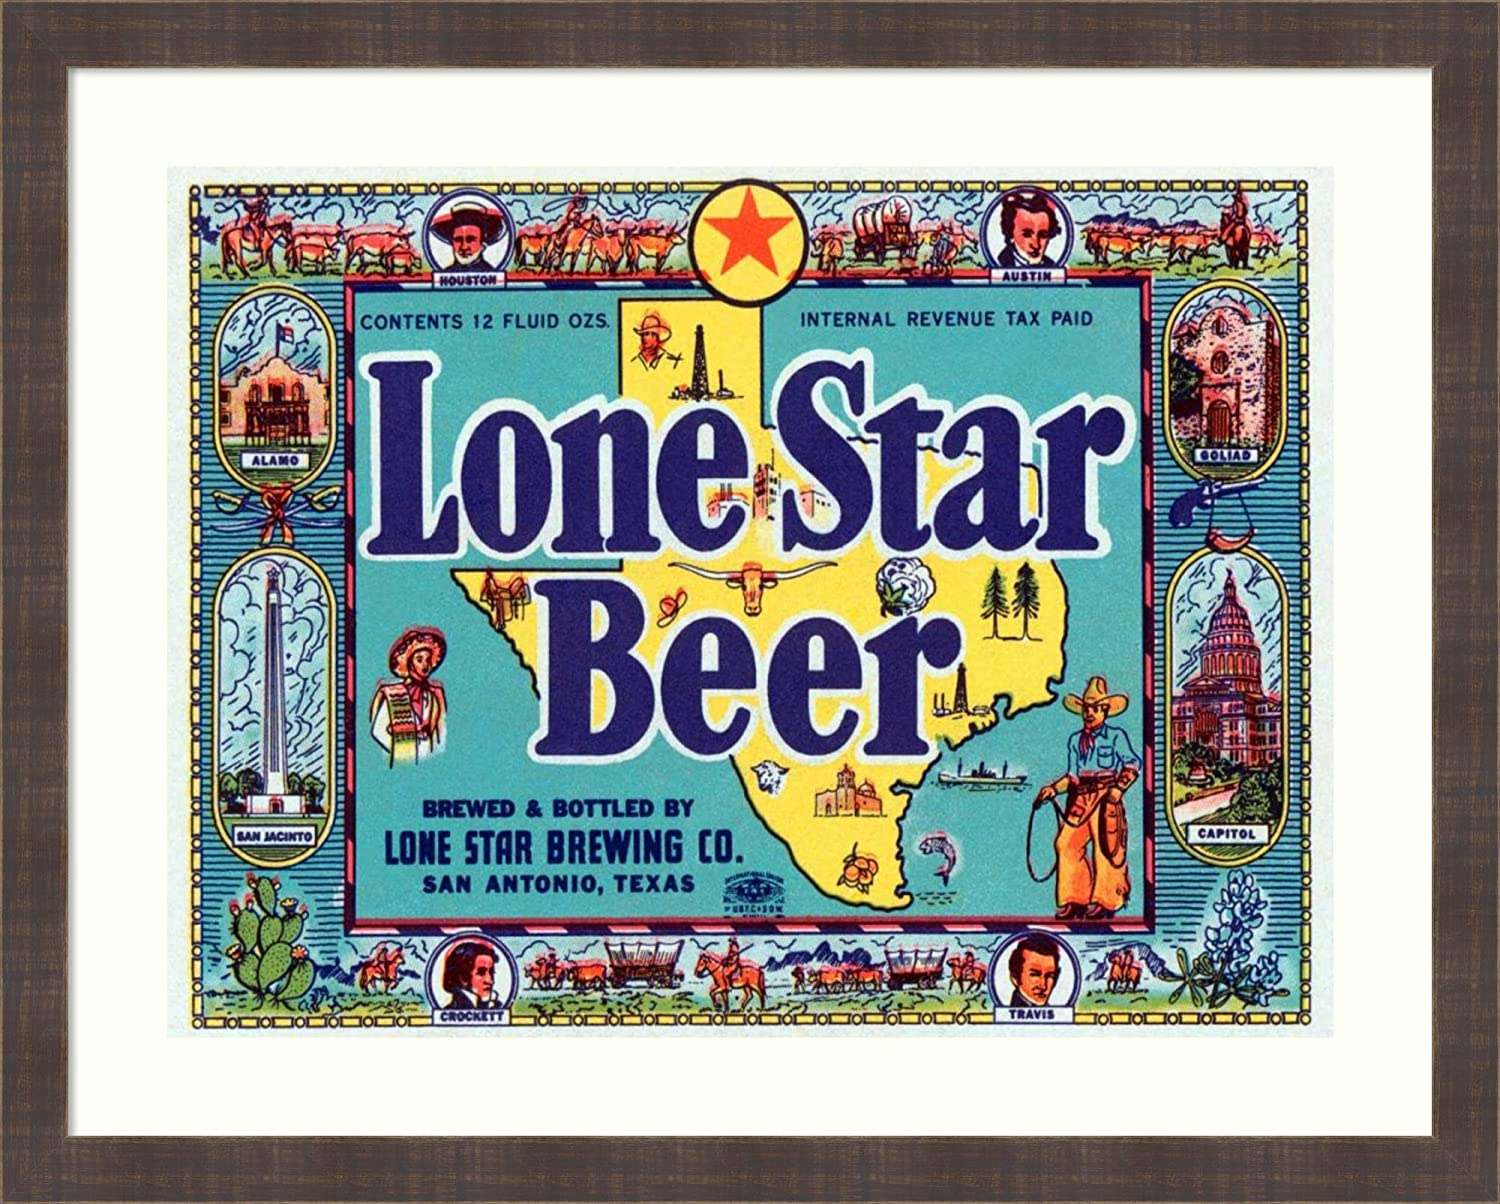 Framed Wall Art Print Lone Star Beer by Vintage Booze Labels 32.62 x 26.25 in.